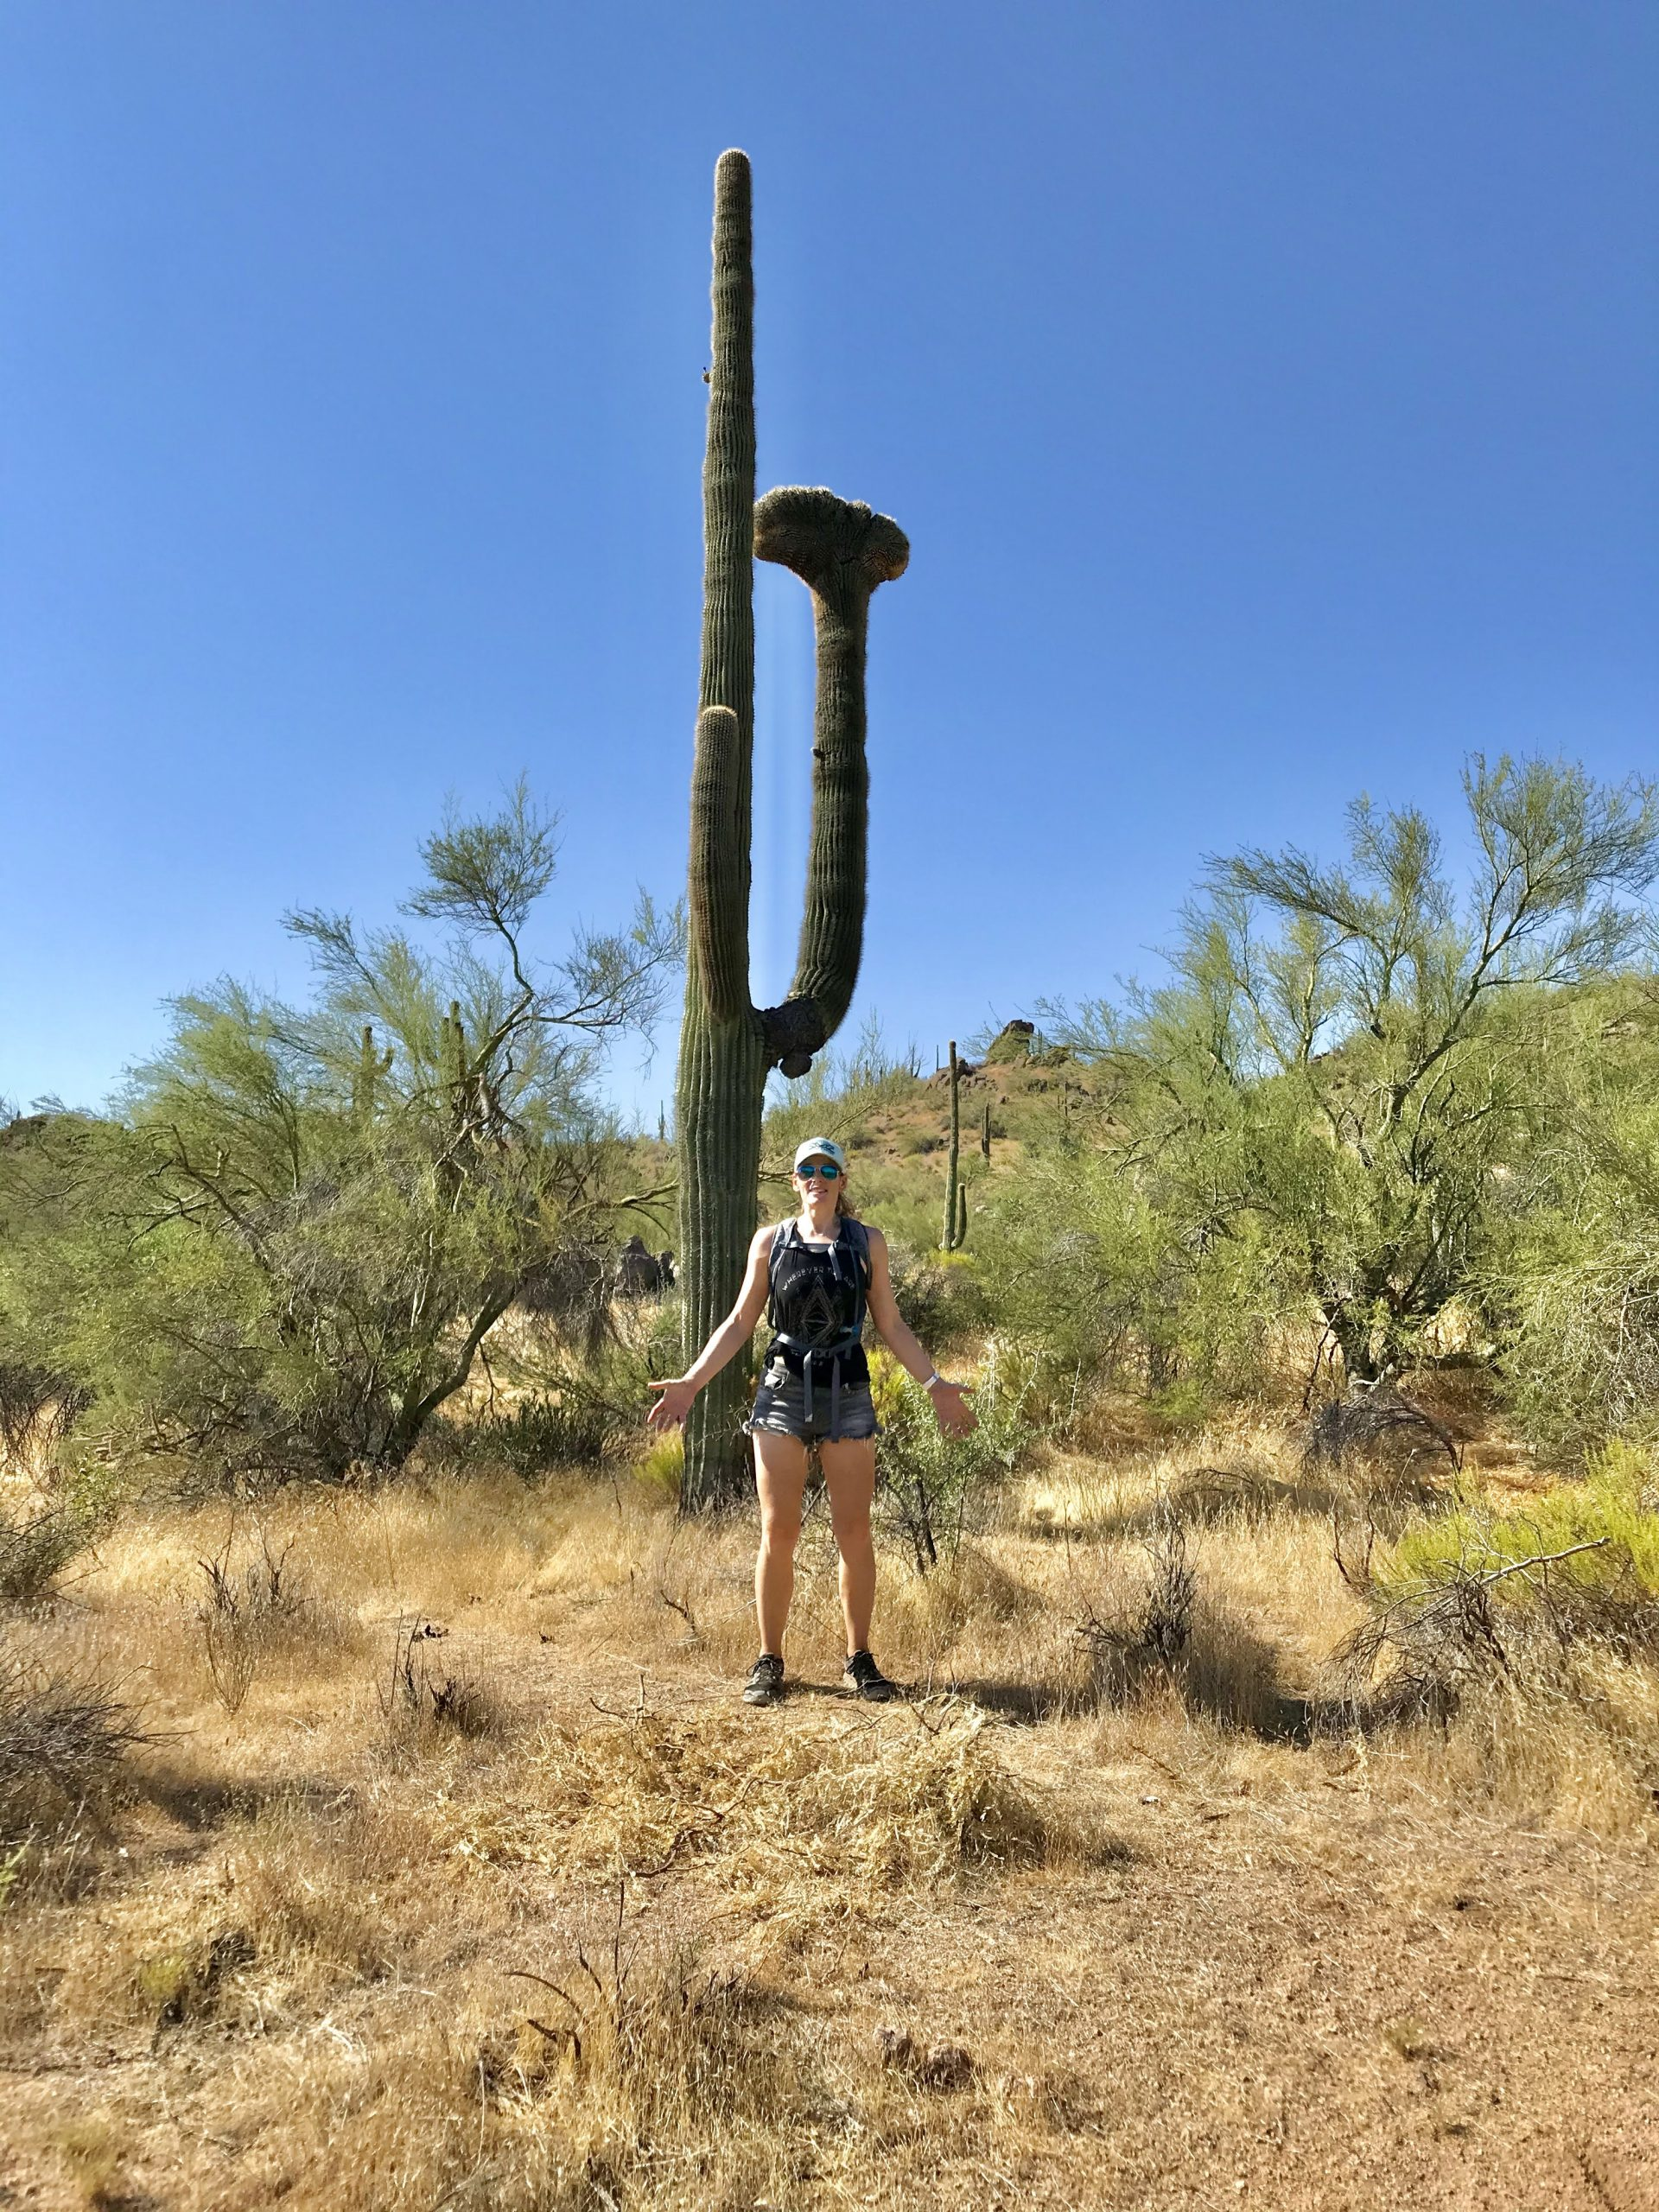 136th St Express/Cow Poke Trail found a crested saguaro